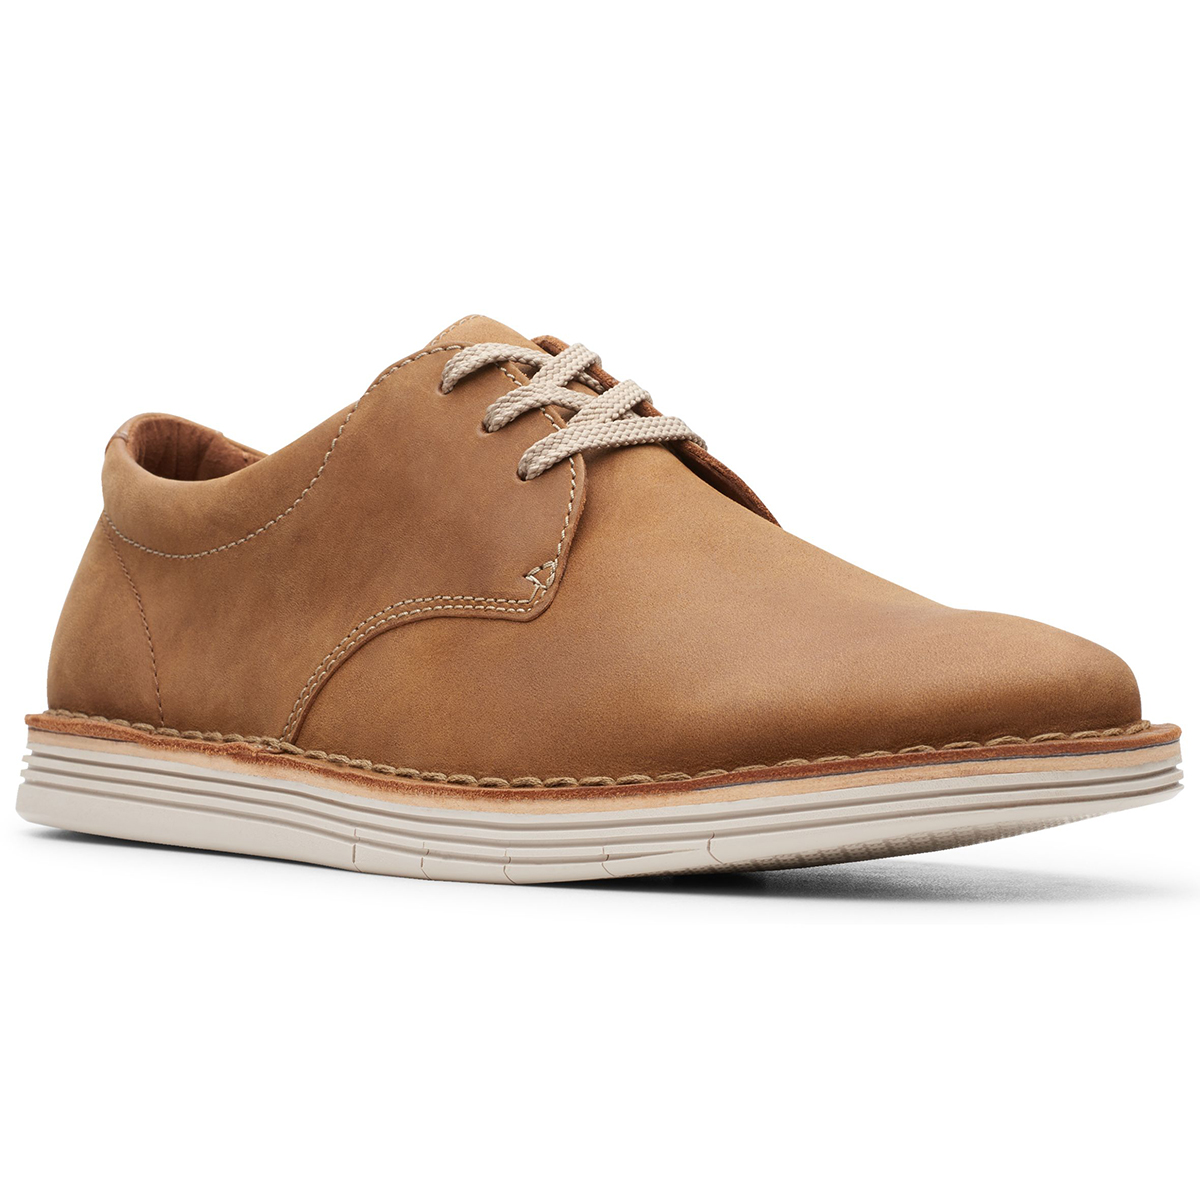 Clarks Forge Vibe Casual Lace-Up Shoes - Brown, 9